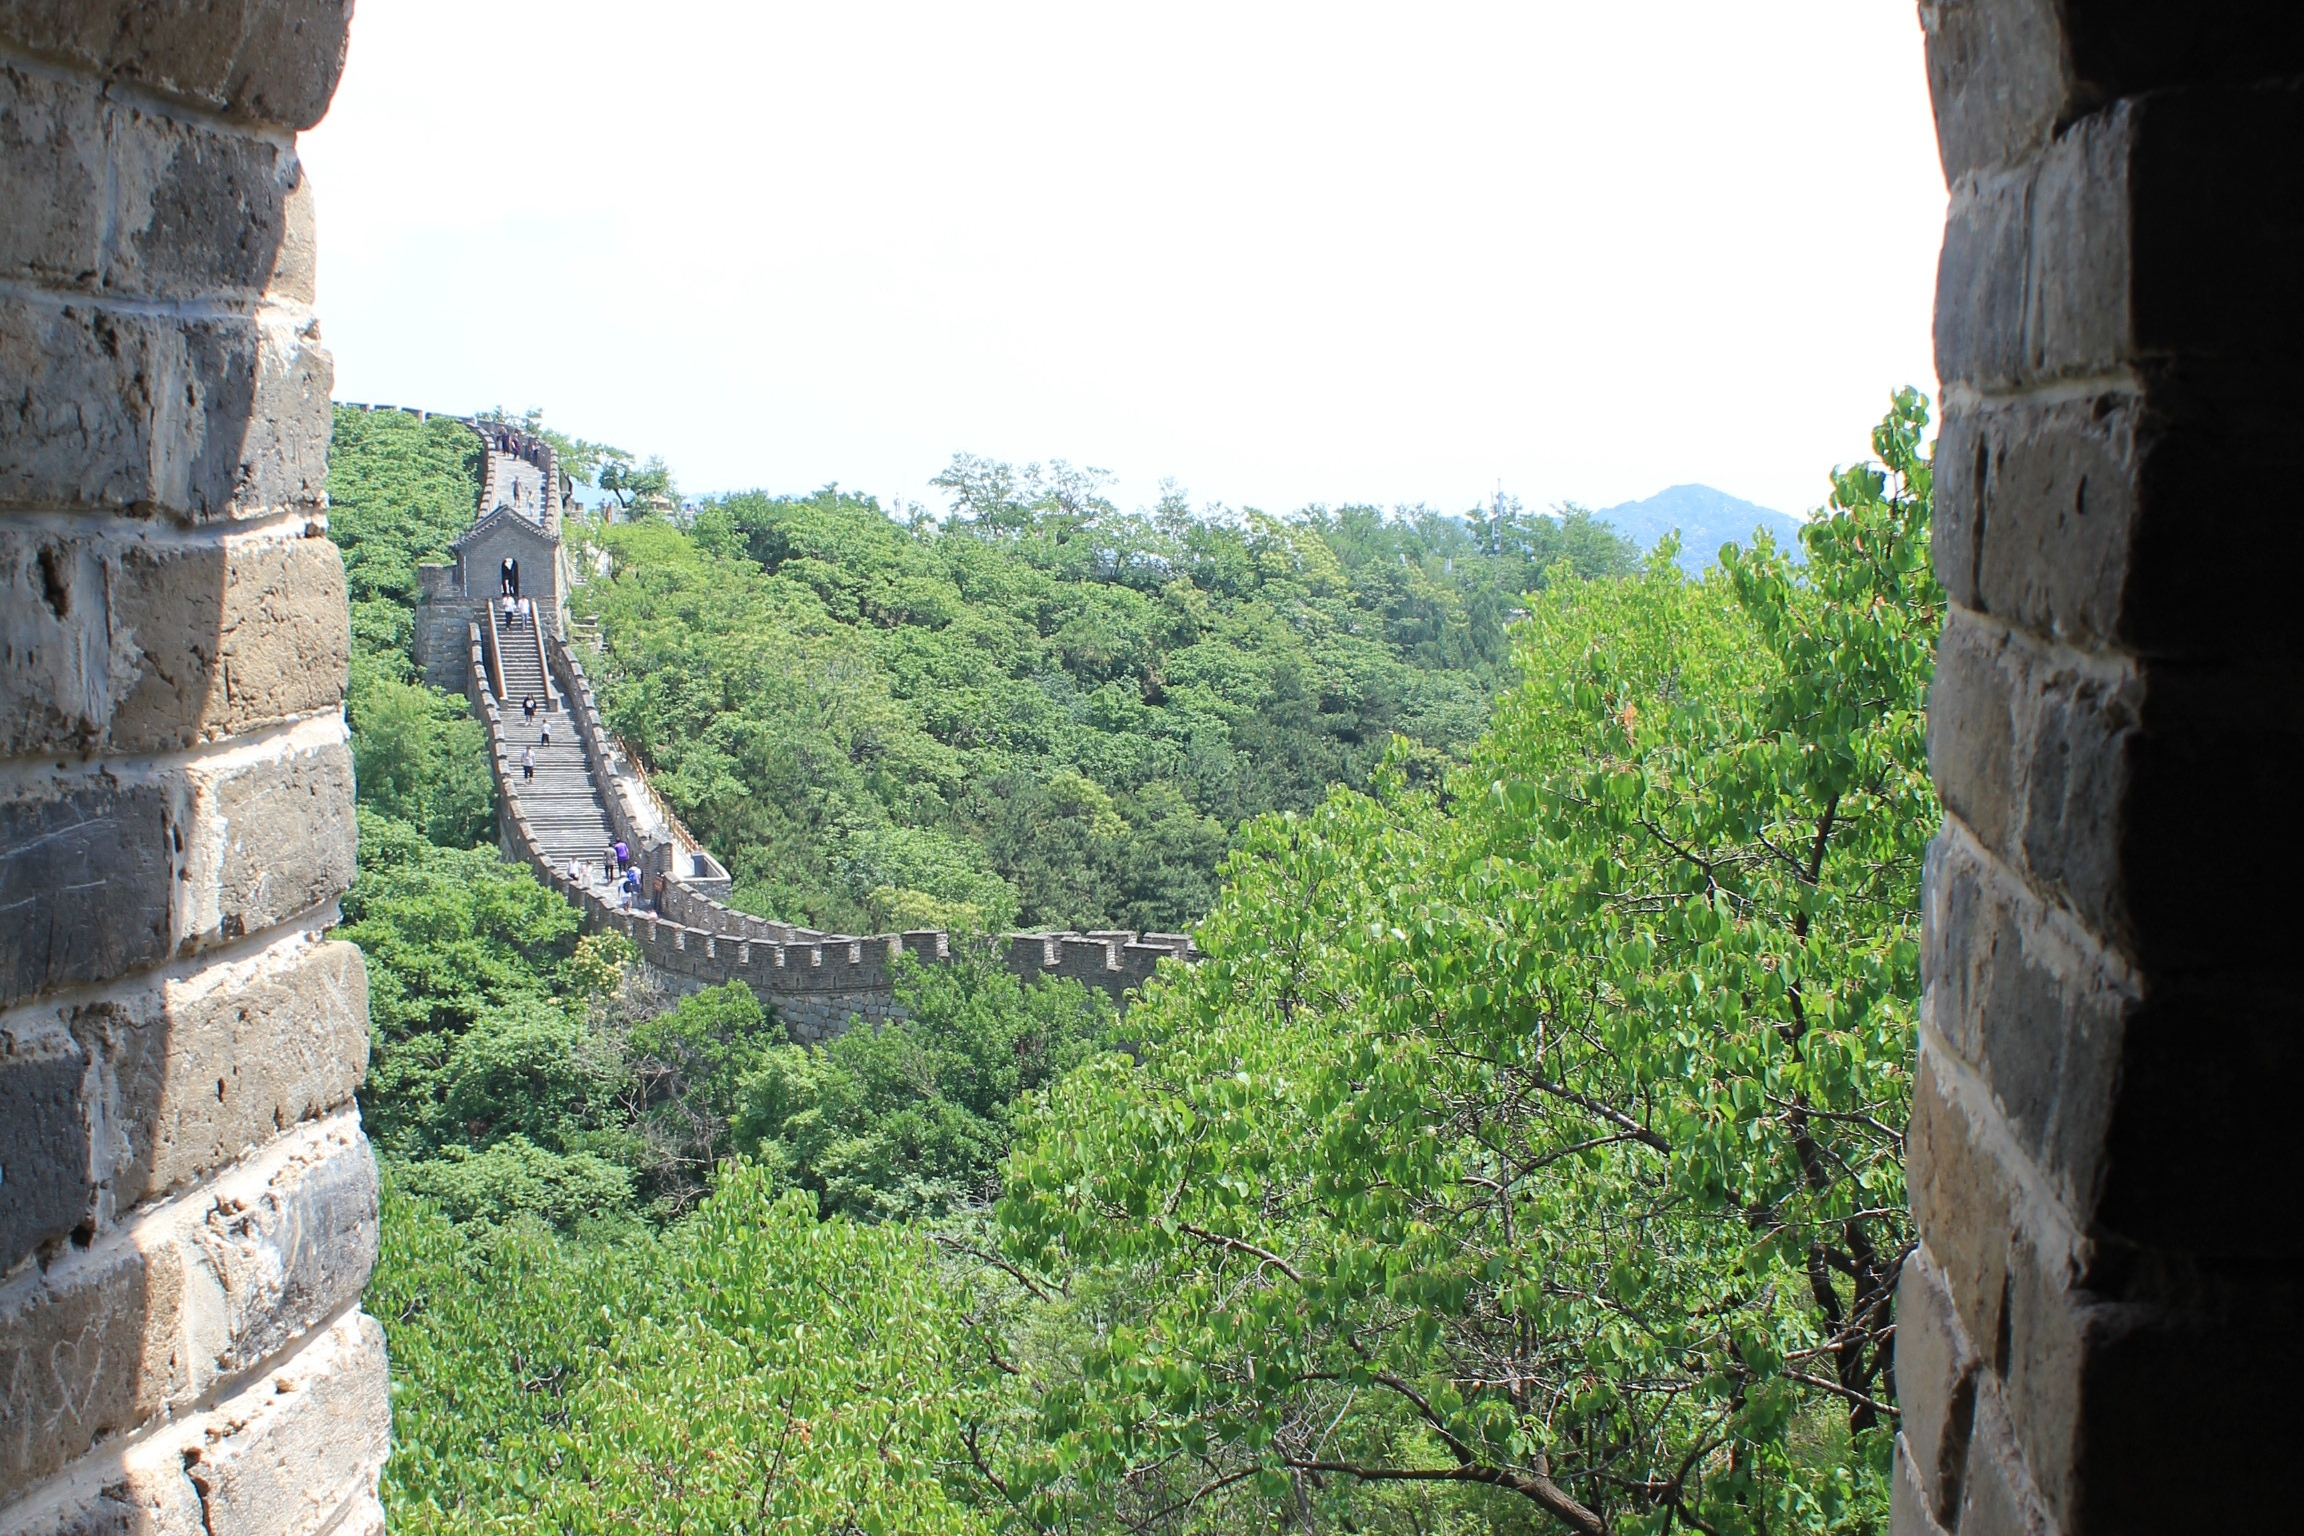 Mutianyu Great Wall – View from watchtower lookout